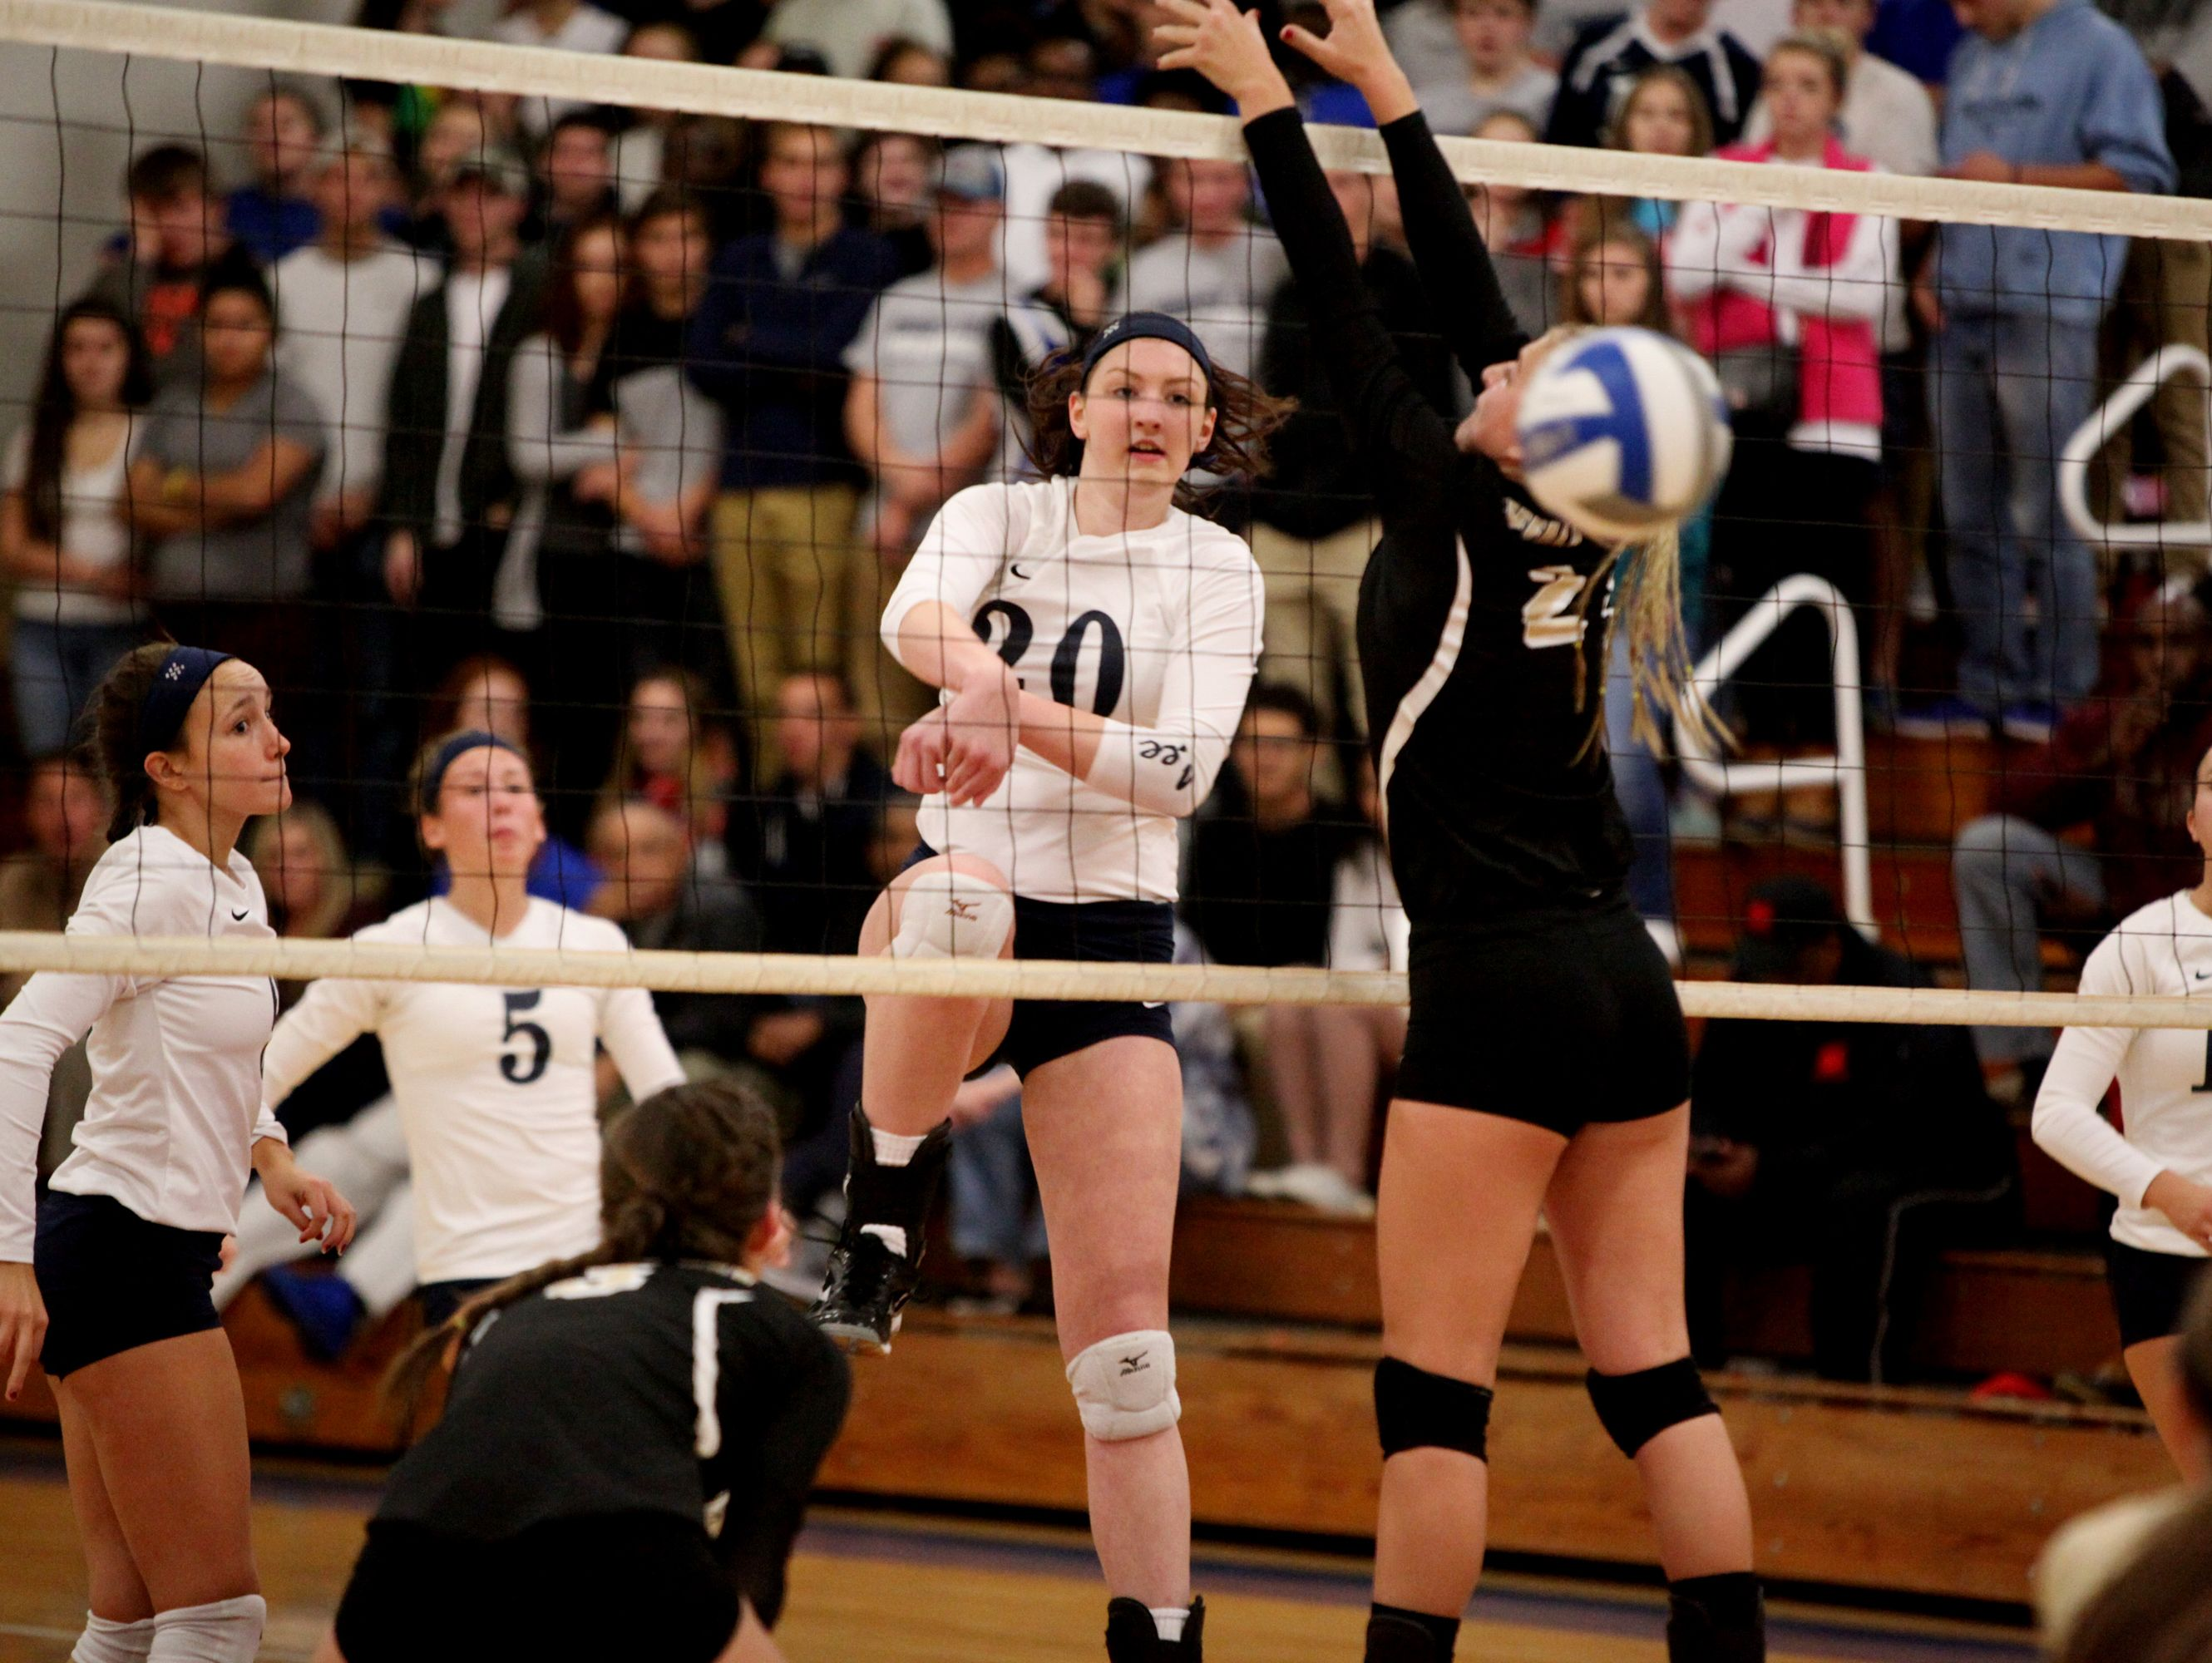 Lee's Alyx Steitz spikes the ball during the 2A girls volleyball championship at R.E. Lee High School in Staunton on Saturday Nov. 12, 2016.